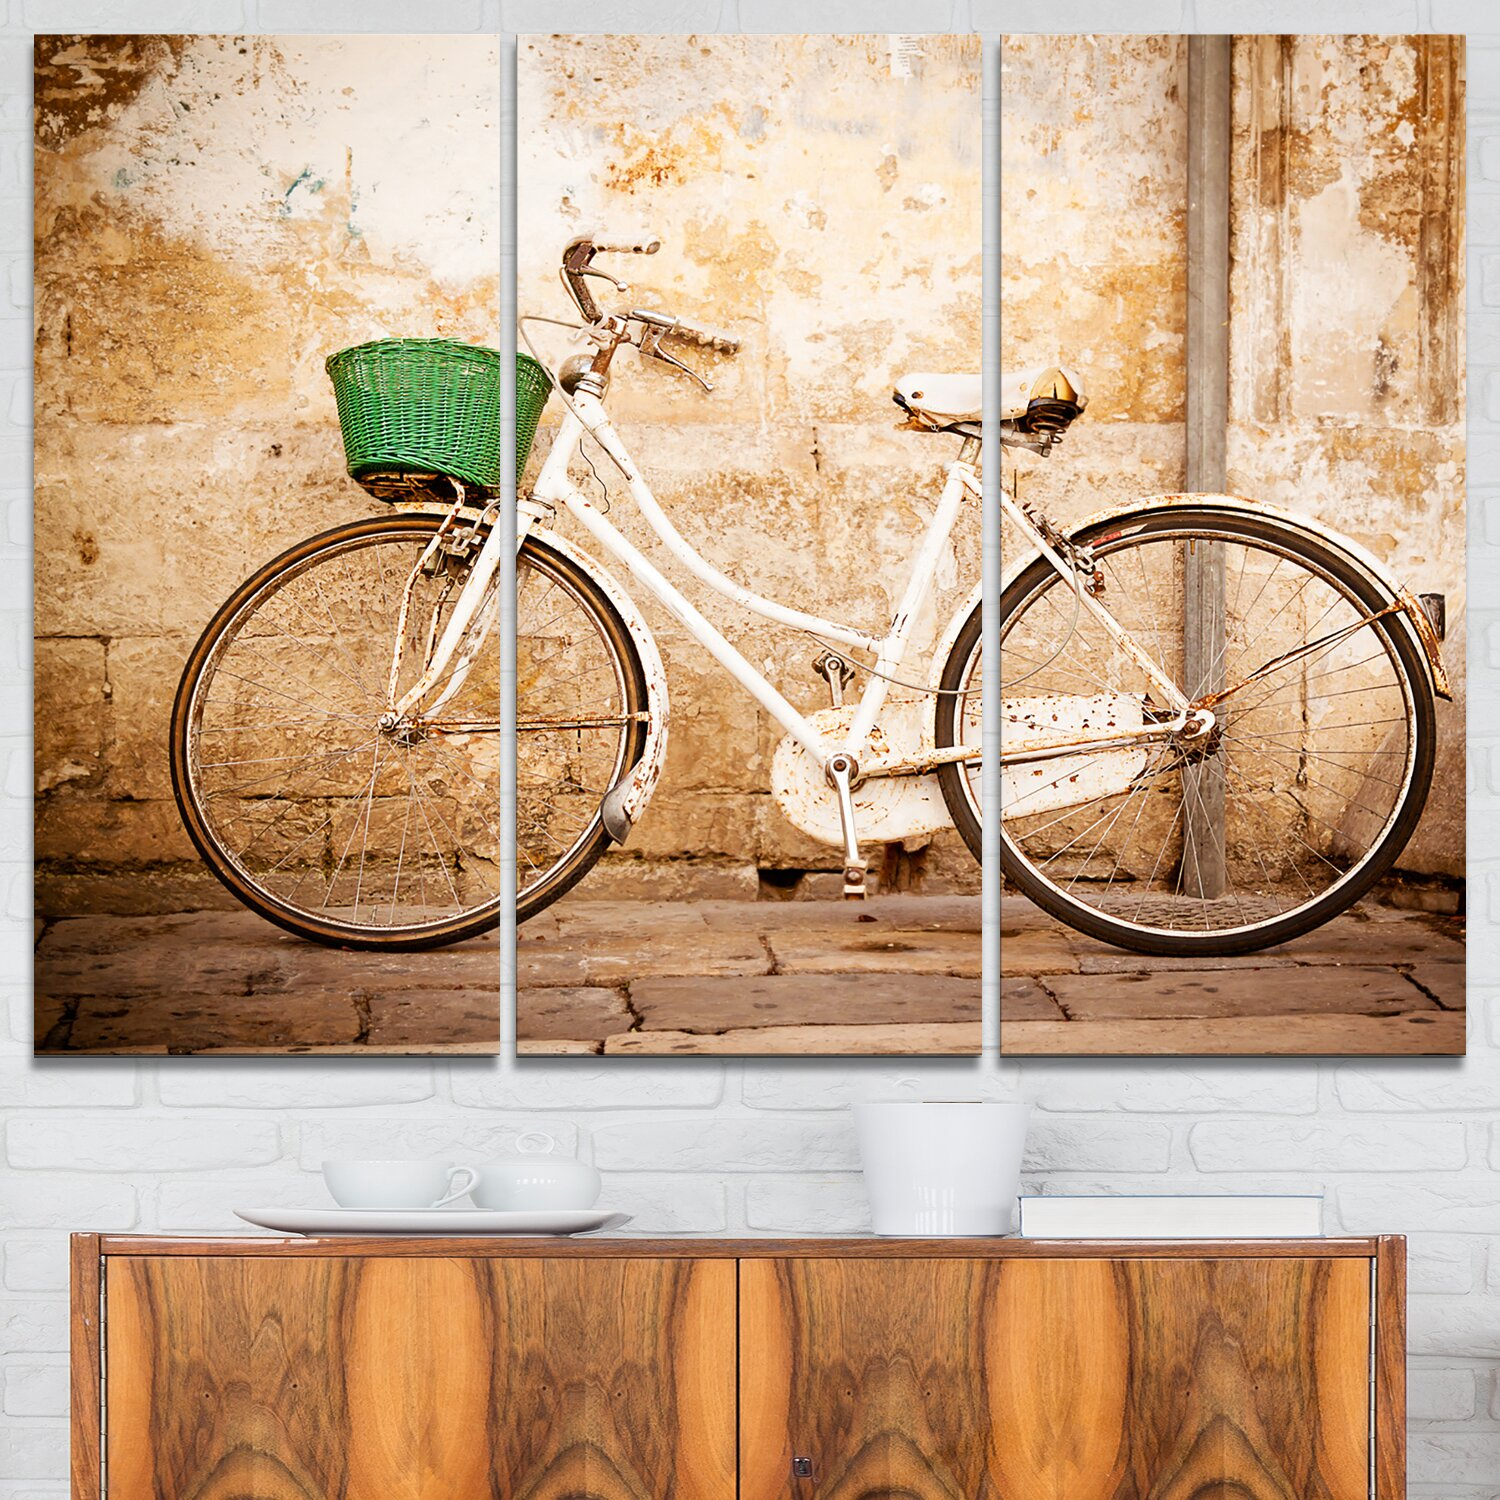 Designart Bicycle Against Wall 3 Piece Graphic Art On